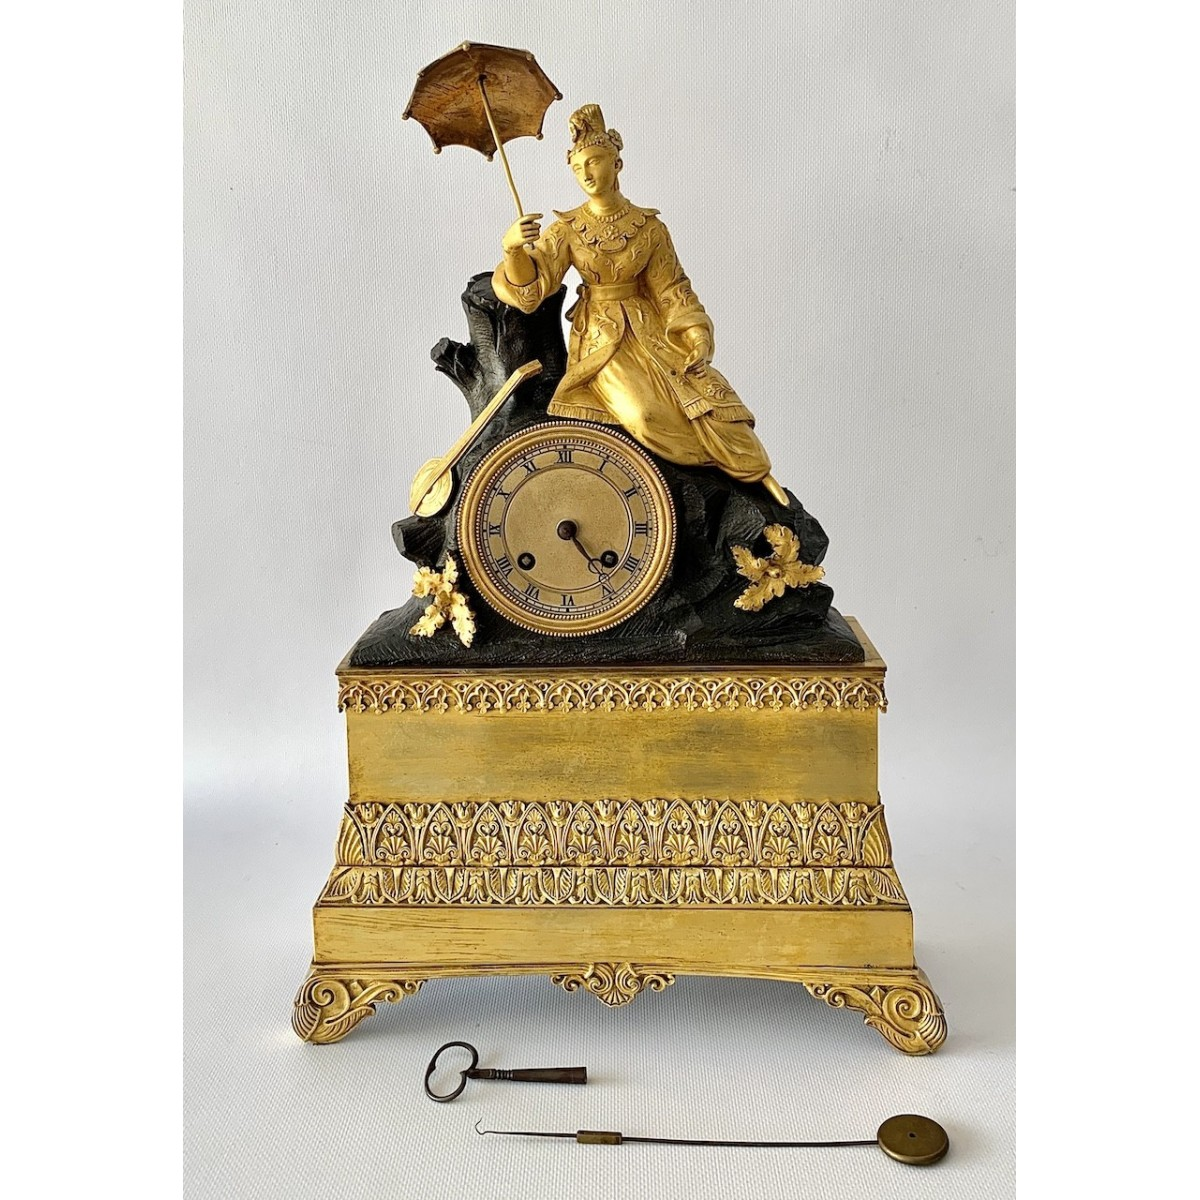 French table pendulum clock, in gilt bronze and green patina, early 19th century empire period.